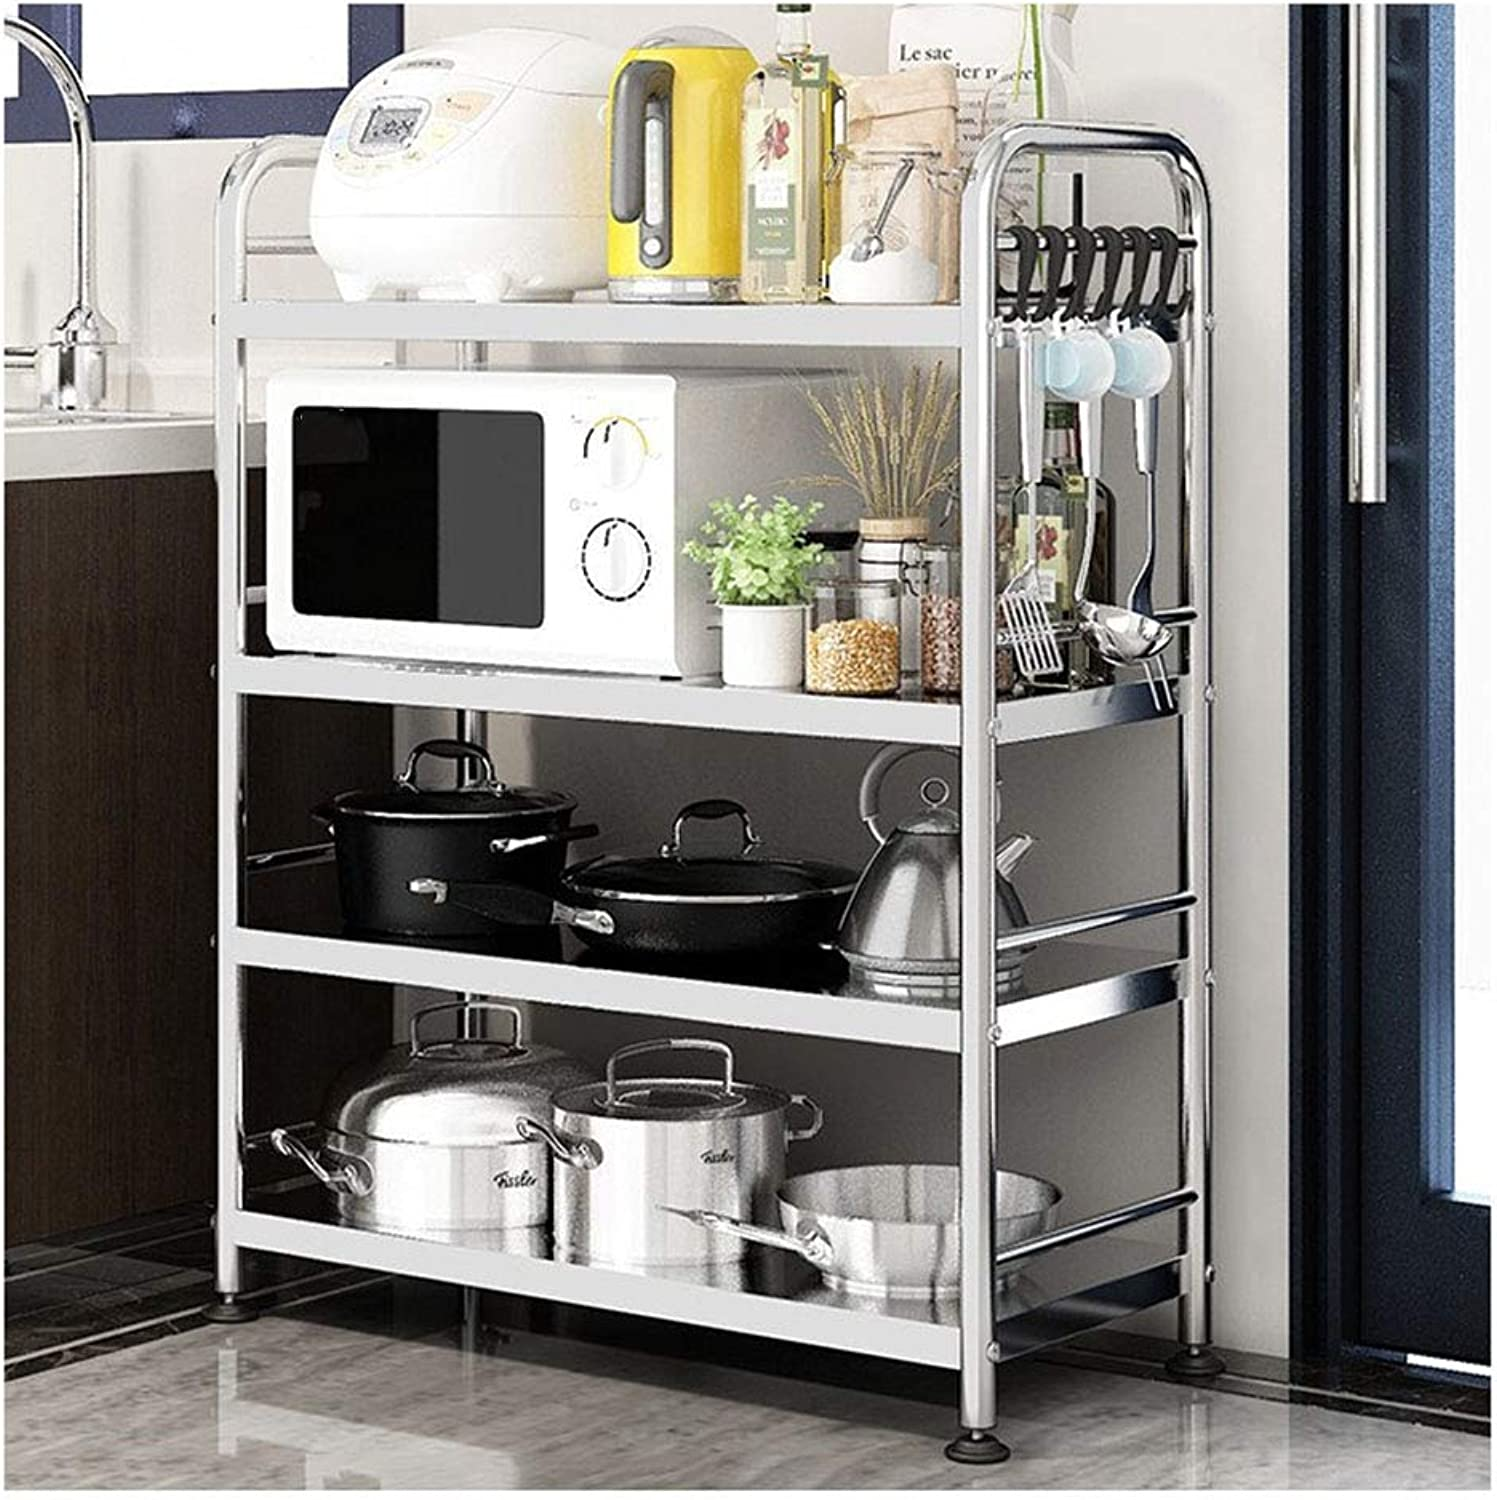 Kitchen Microwave Oven Rack Oven Rack 4-Layers Stainless Steel Kitchen Storage Rack-40 60 80x35x100cm Organisation (Size   Width-80cm)